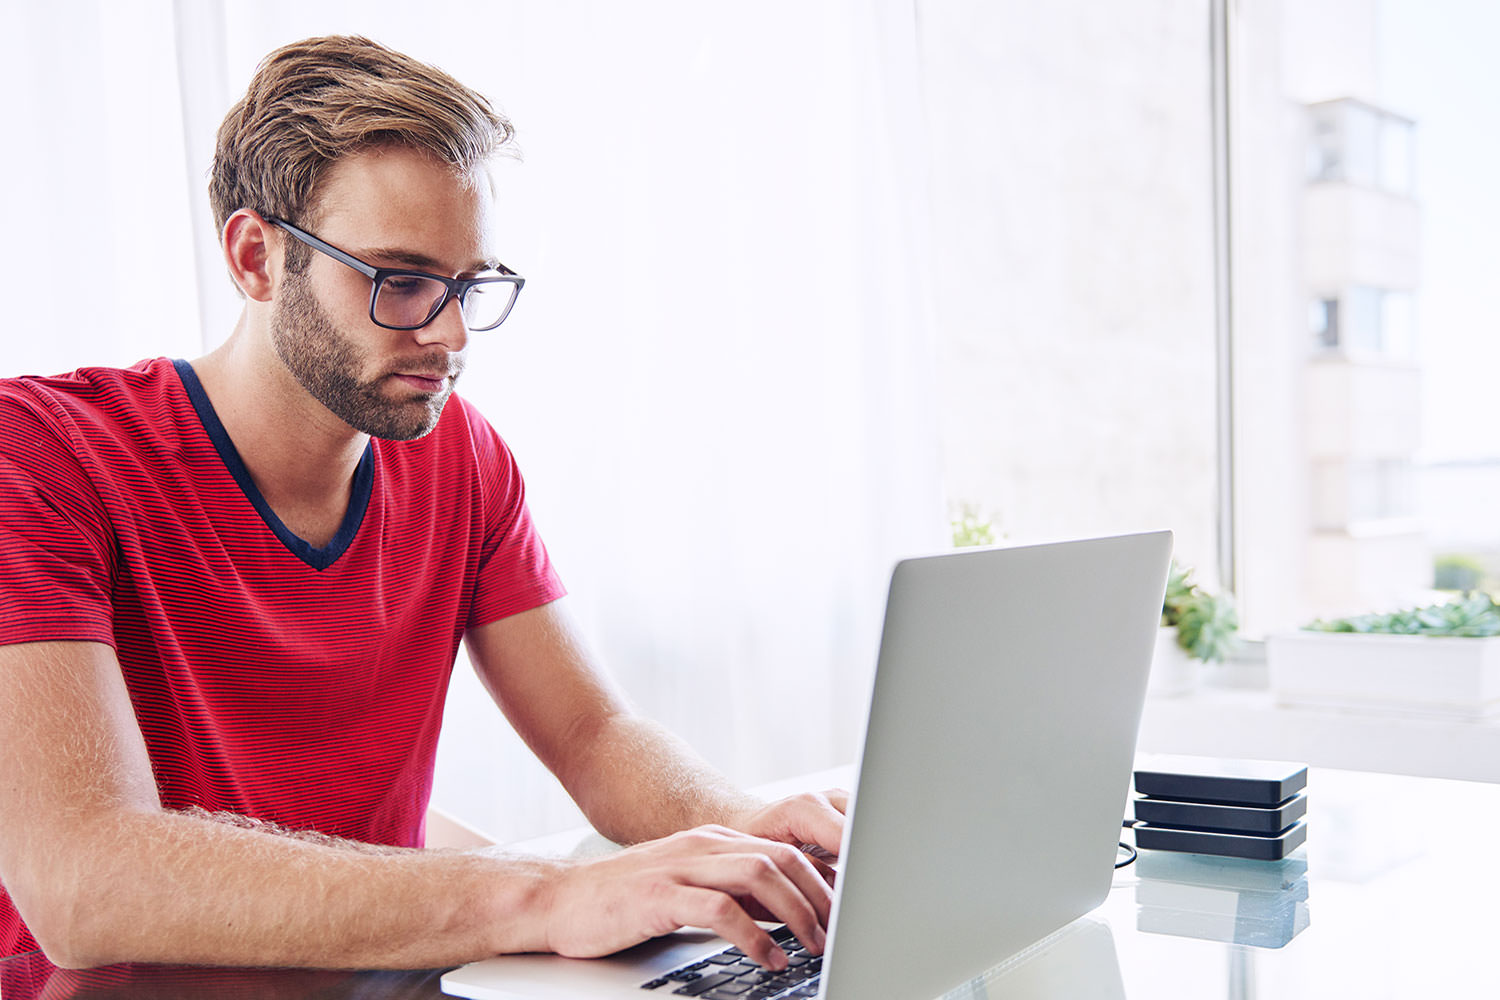 Man in red shirt typing on a laptop.